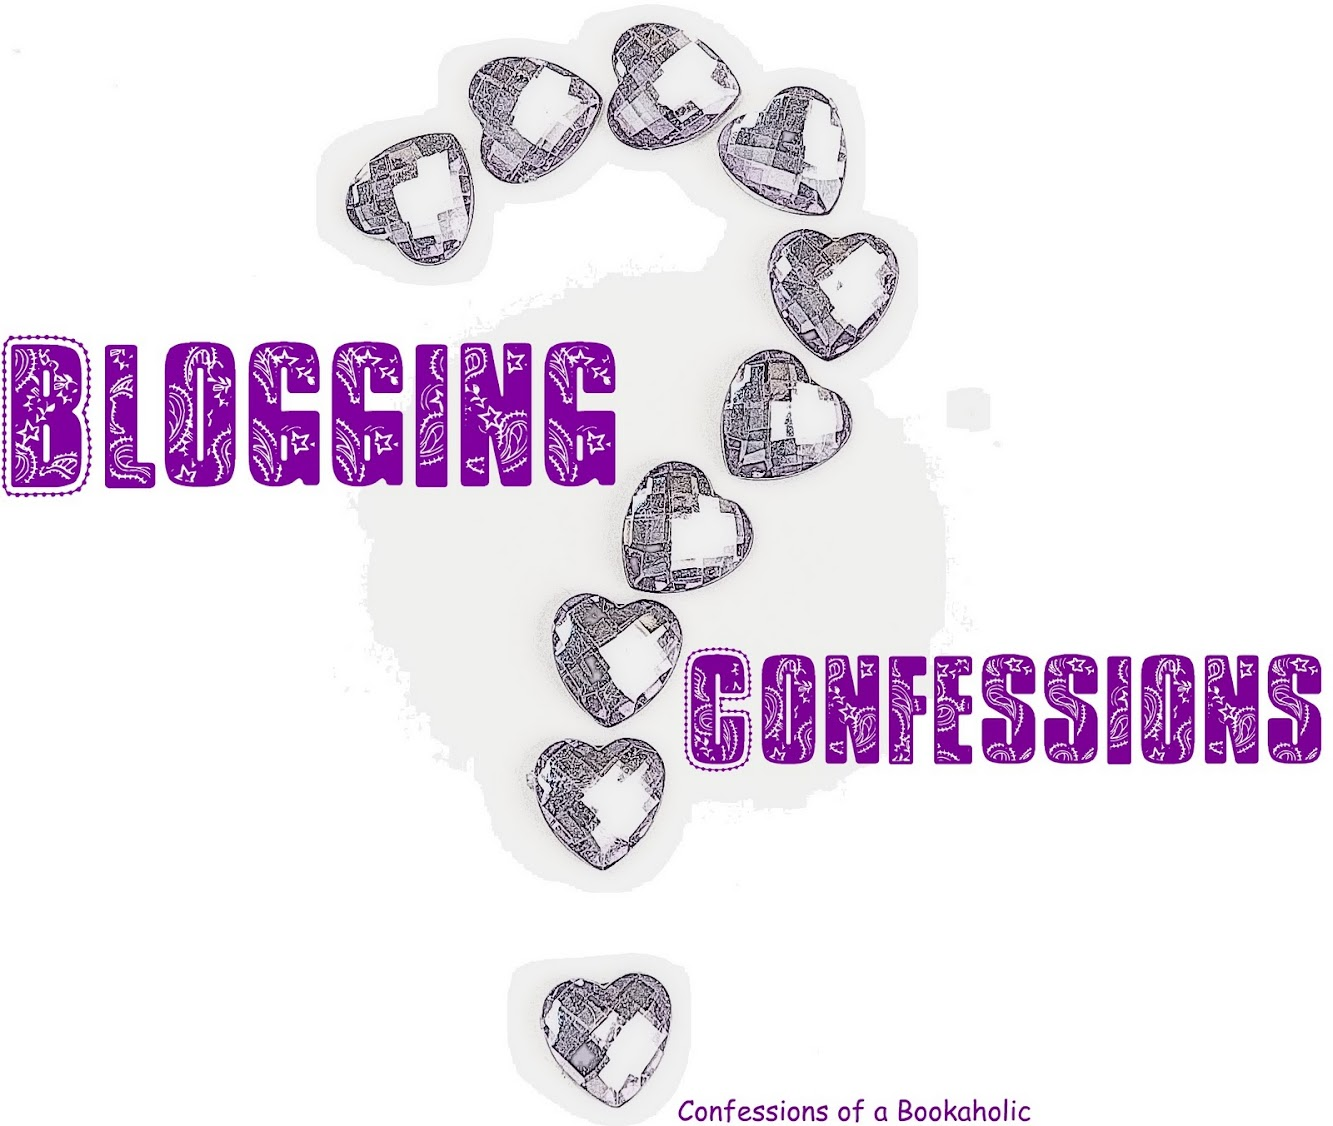 Blogging Confessions (1) Getting Started